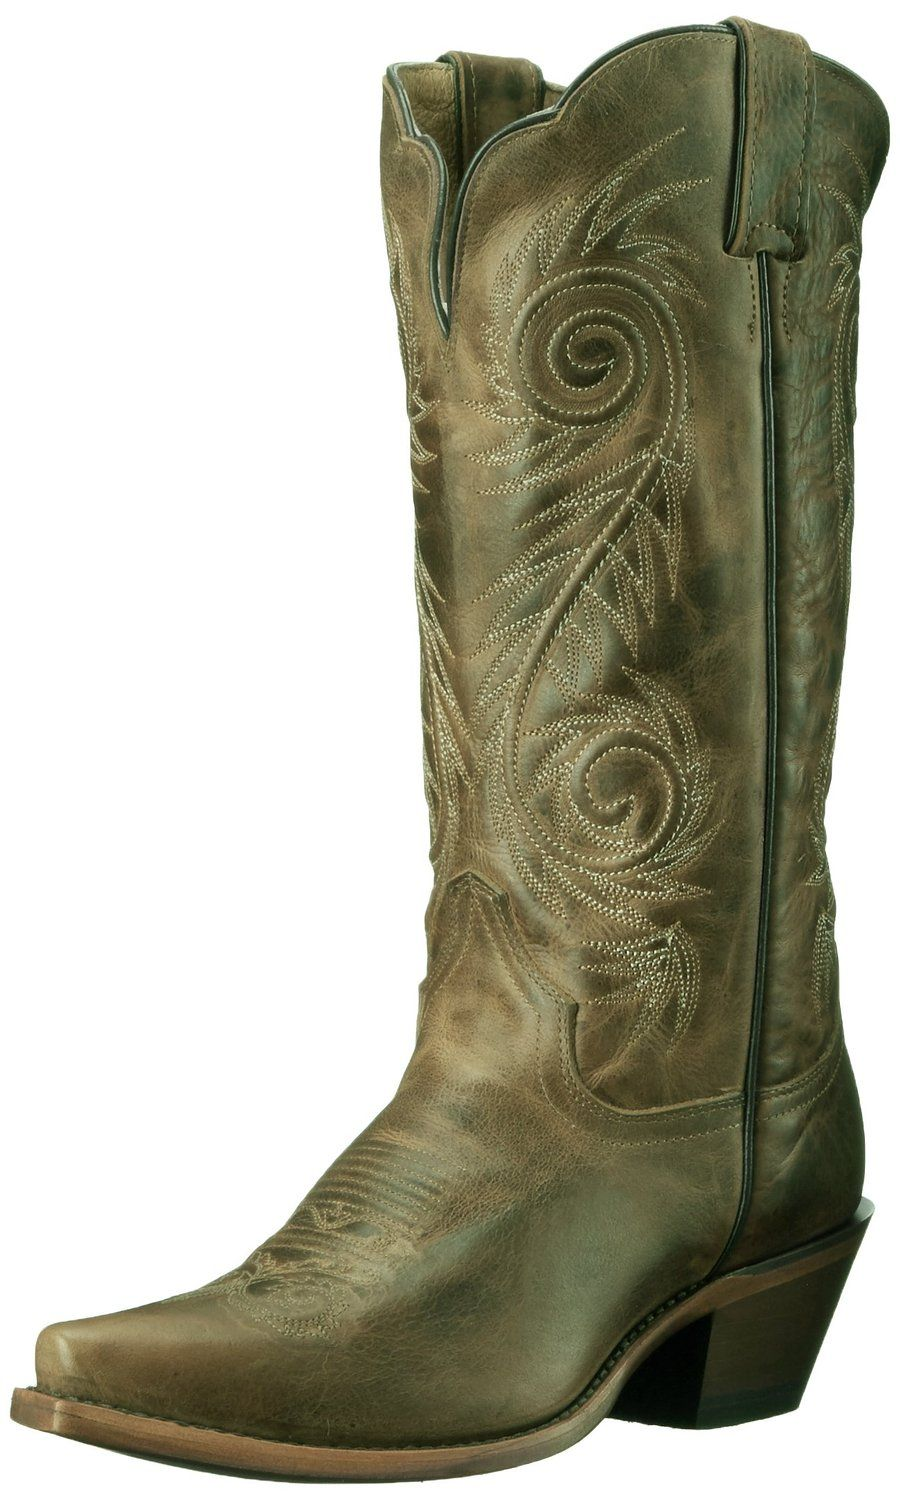 3dd581d1415 Justin Boots Women's Classic Western Boot Narrow Square Toe Shoe ...